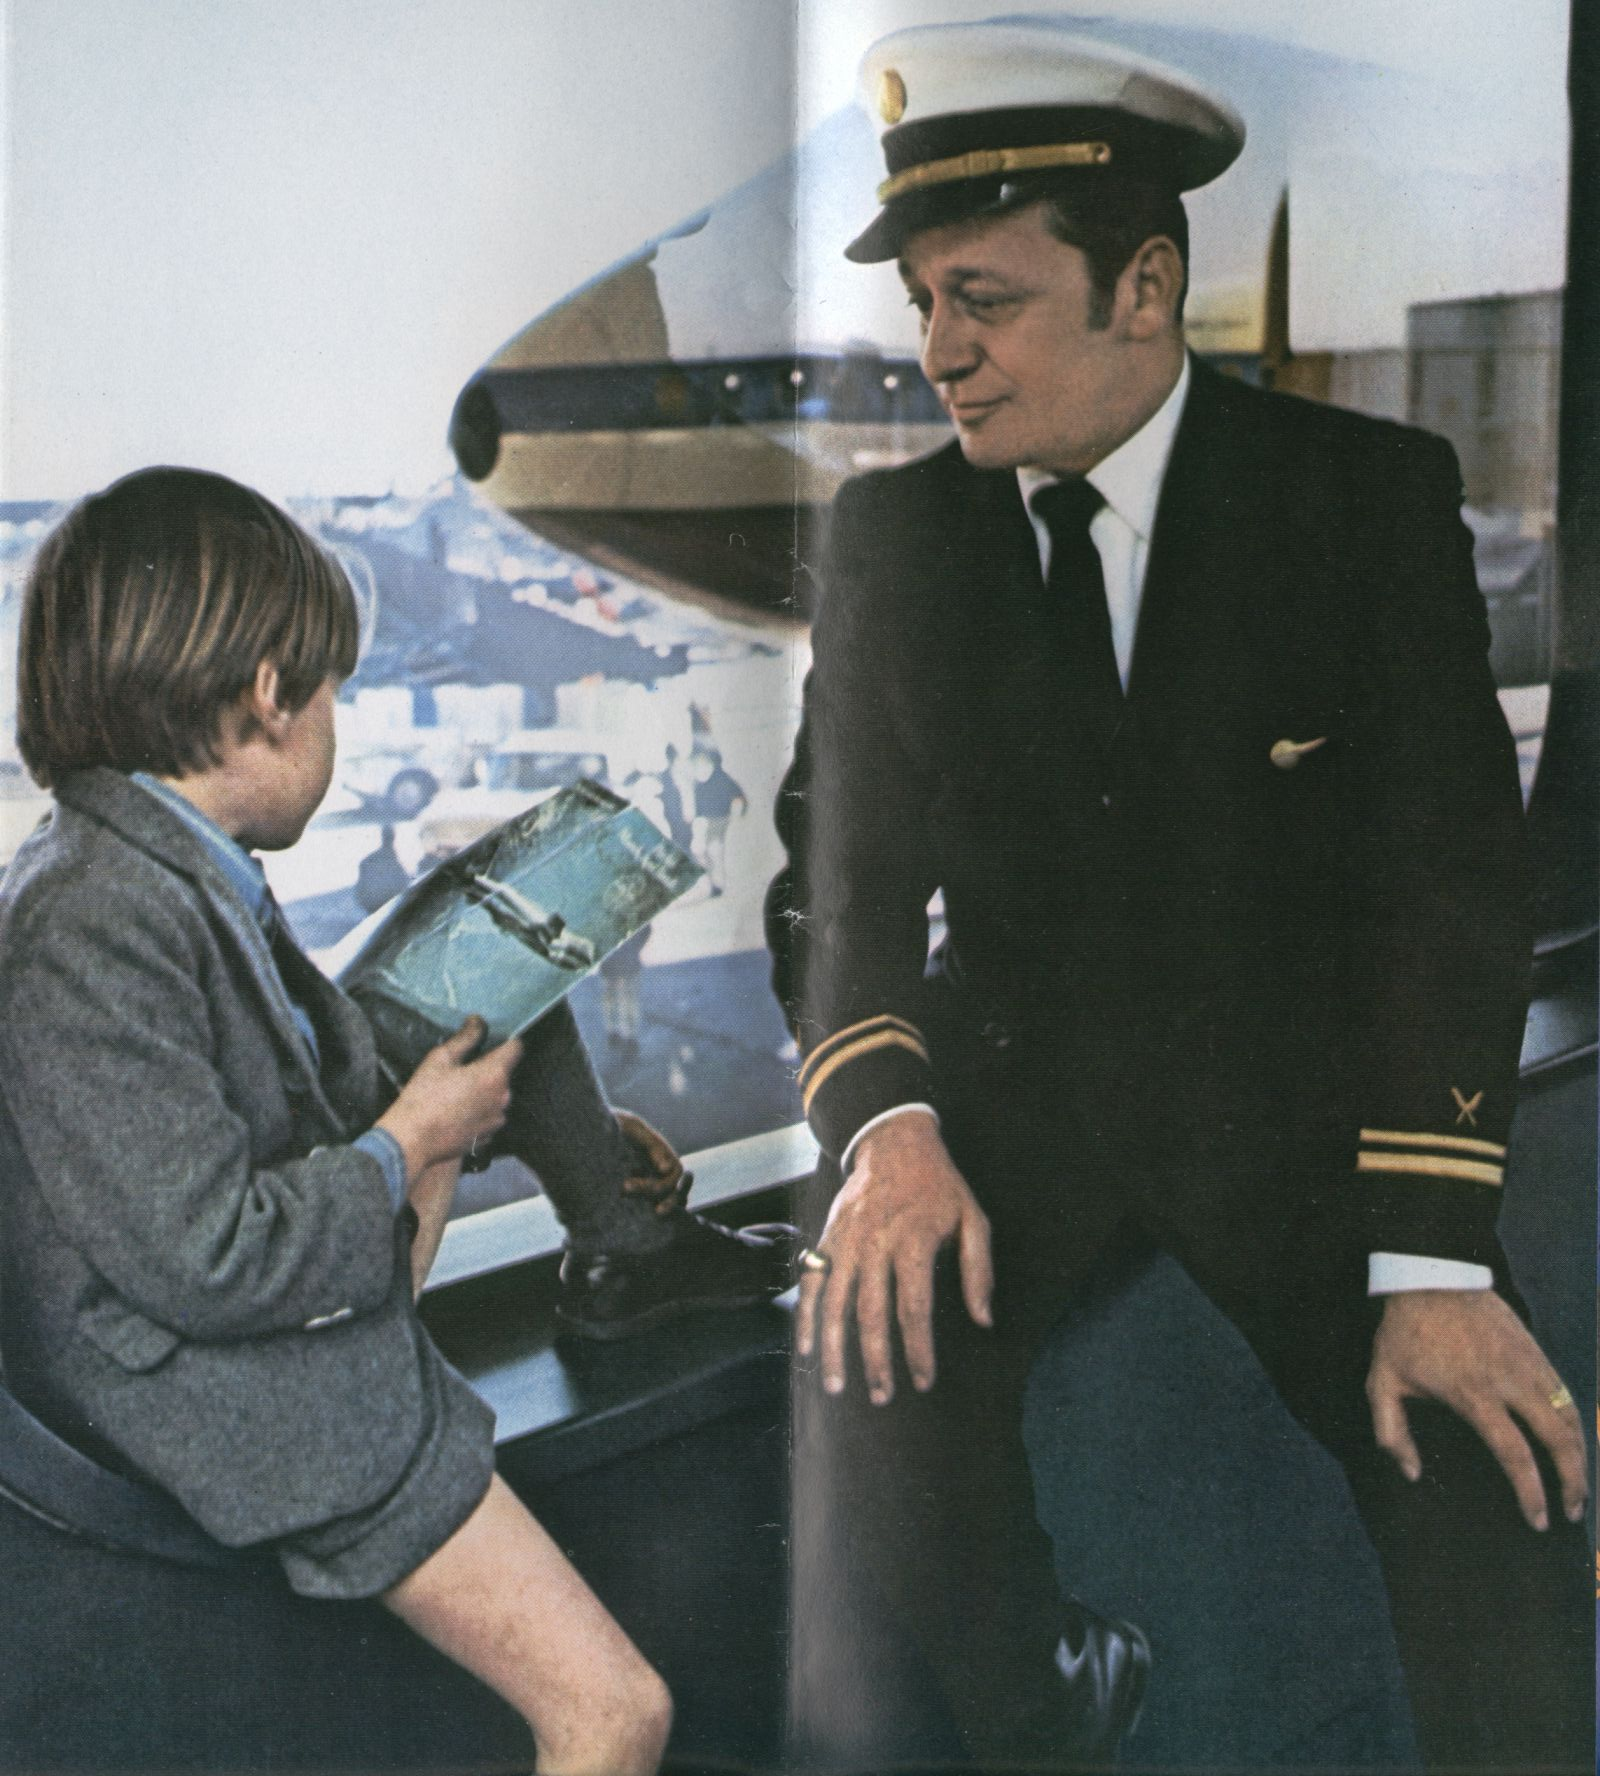 1970 When Pan Am introduced the 747 the crew compliment included a Flight Director to oversee all the flight attendants.  In this photo Flight Director Joe Pasquini speaks with a young passenger at Pan Am's WorldPort Terminal at New York JFK Airport.